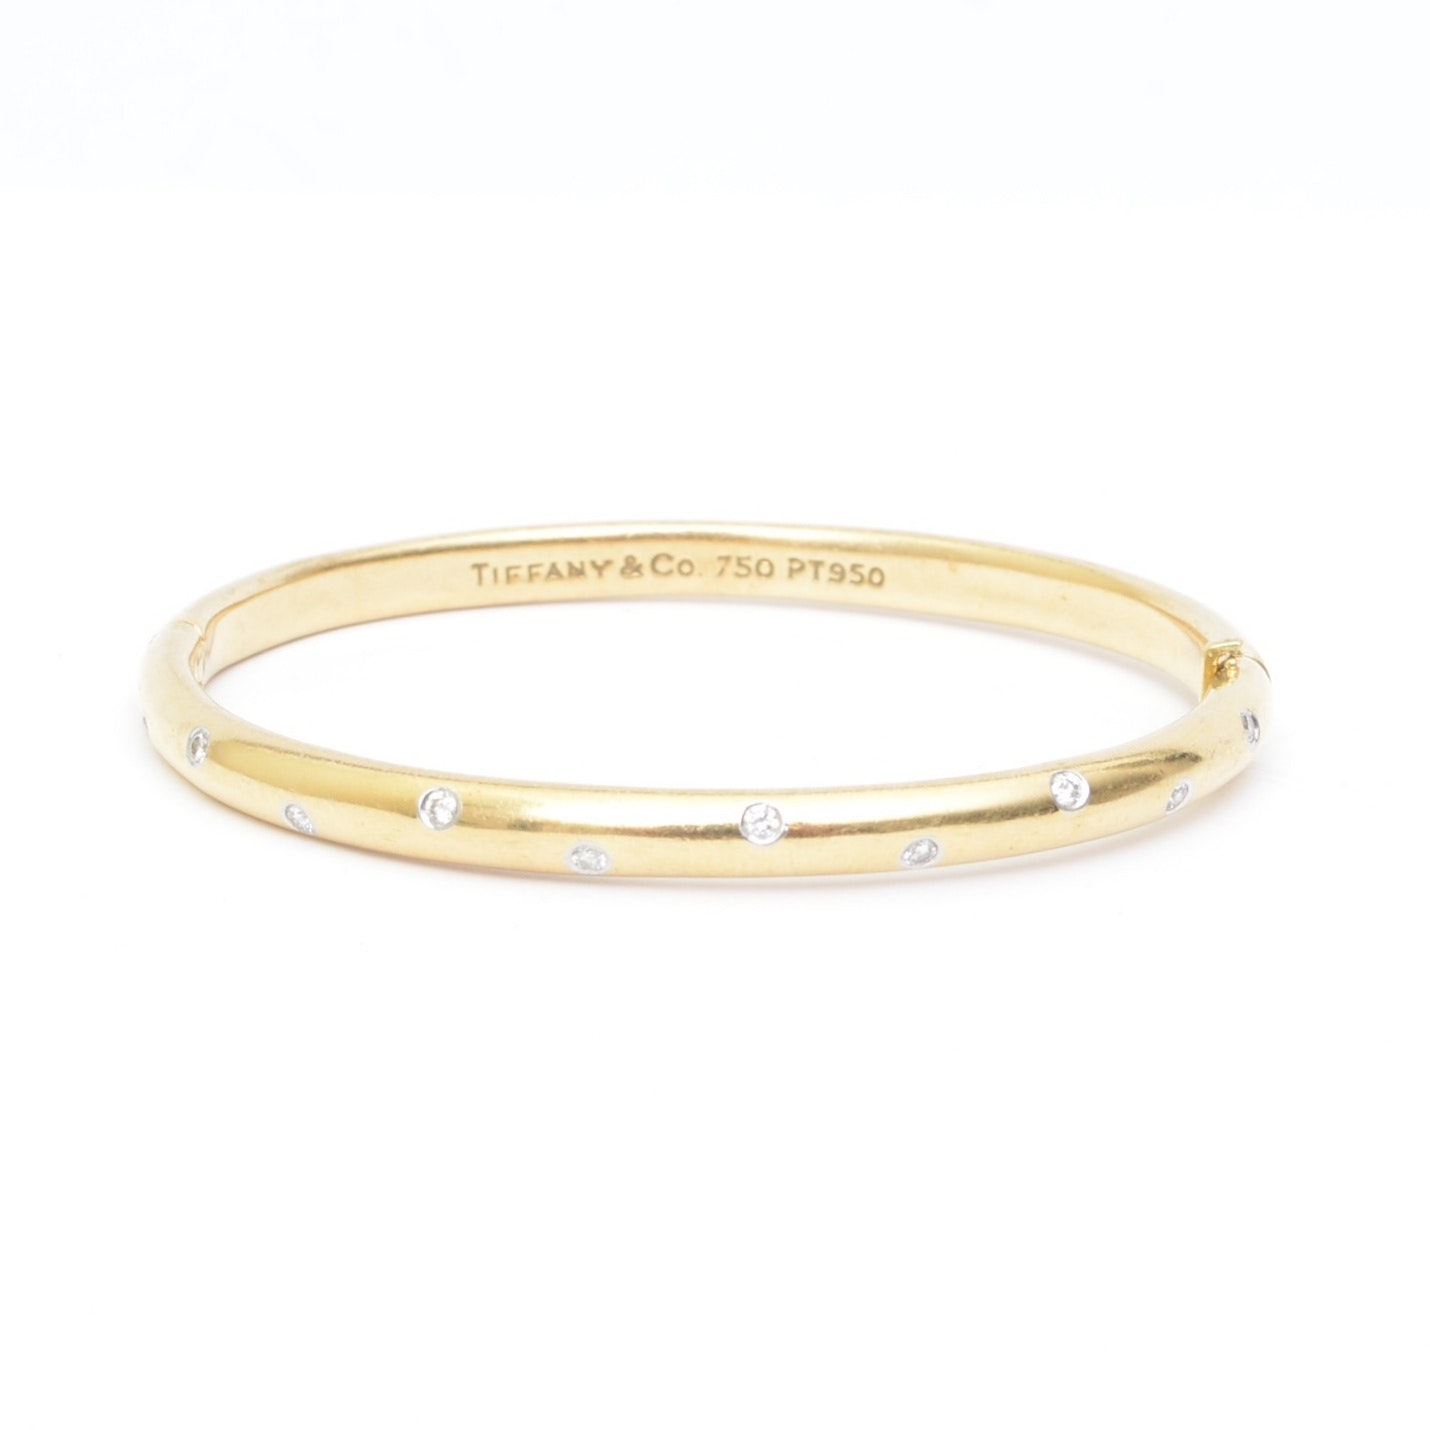 Tiffany & Co. 18K Yellow Gold Platinum and Diamond Bracelet